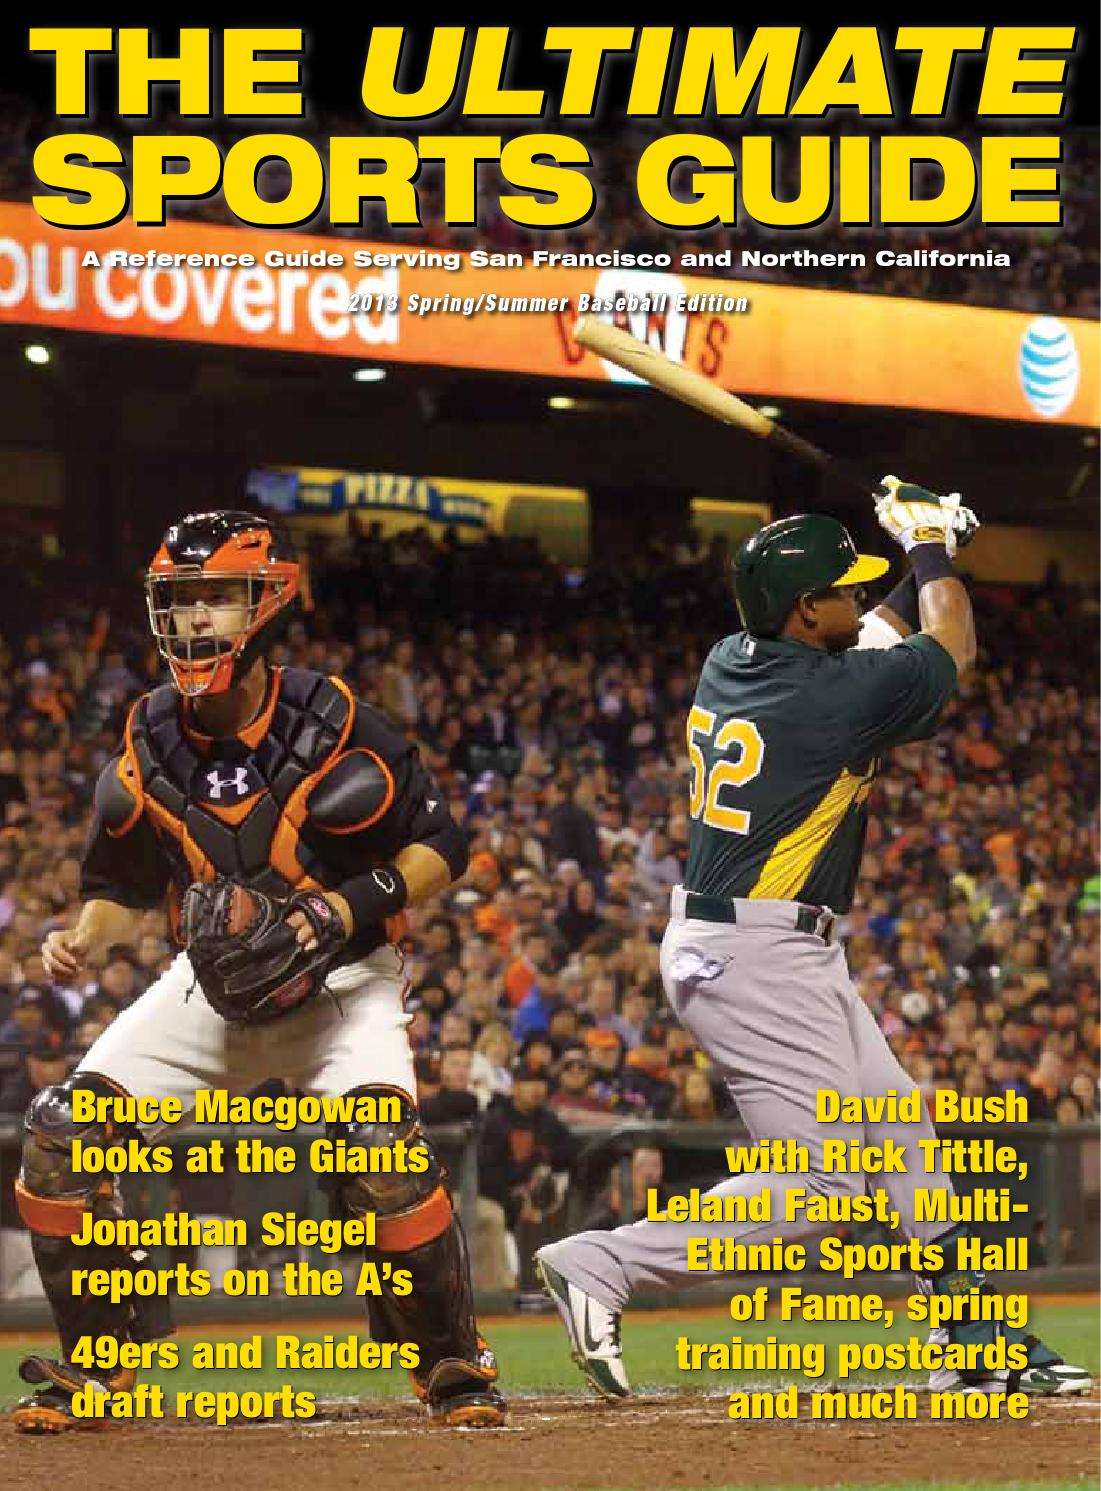 2013 mlb usg by the ultimate sports guide issuu.